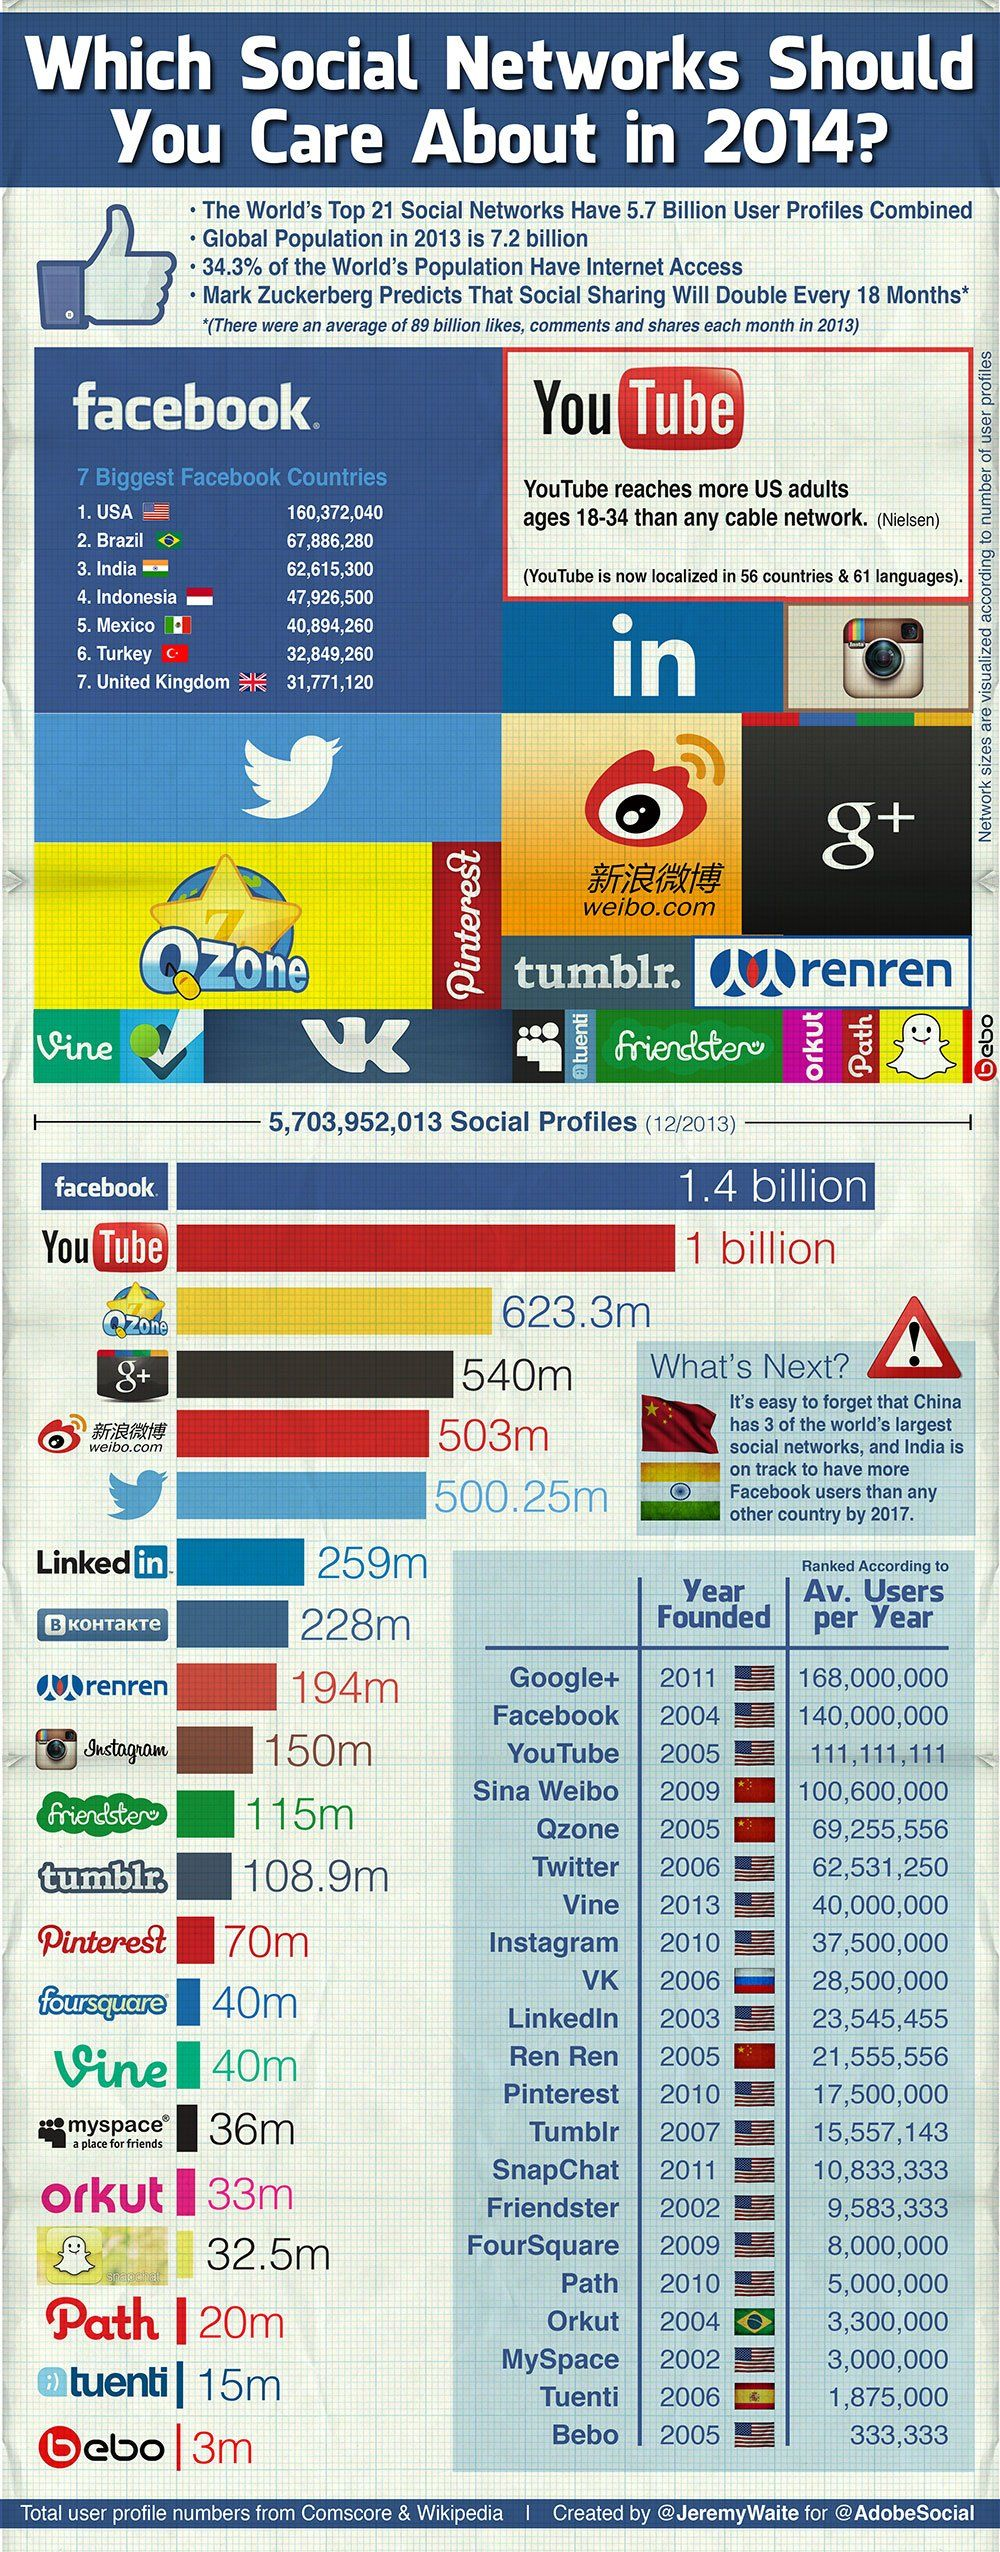 Social Networks Should You Use in 2014